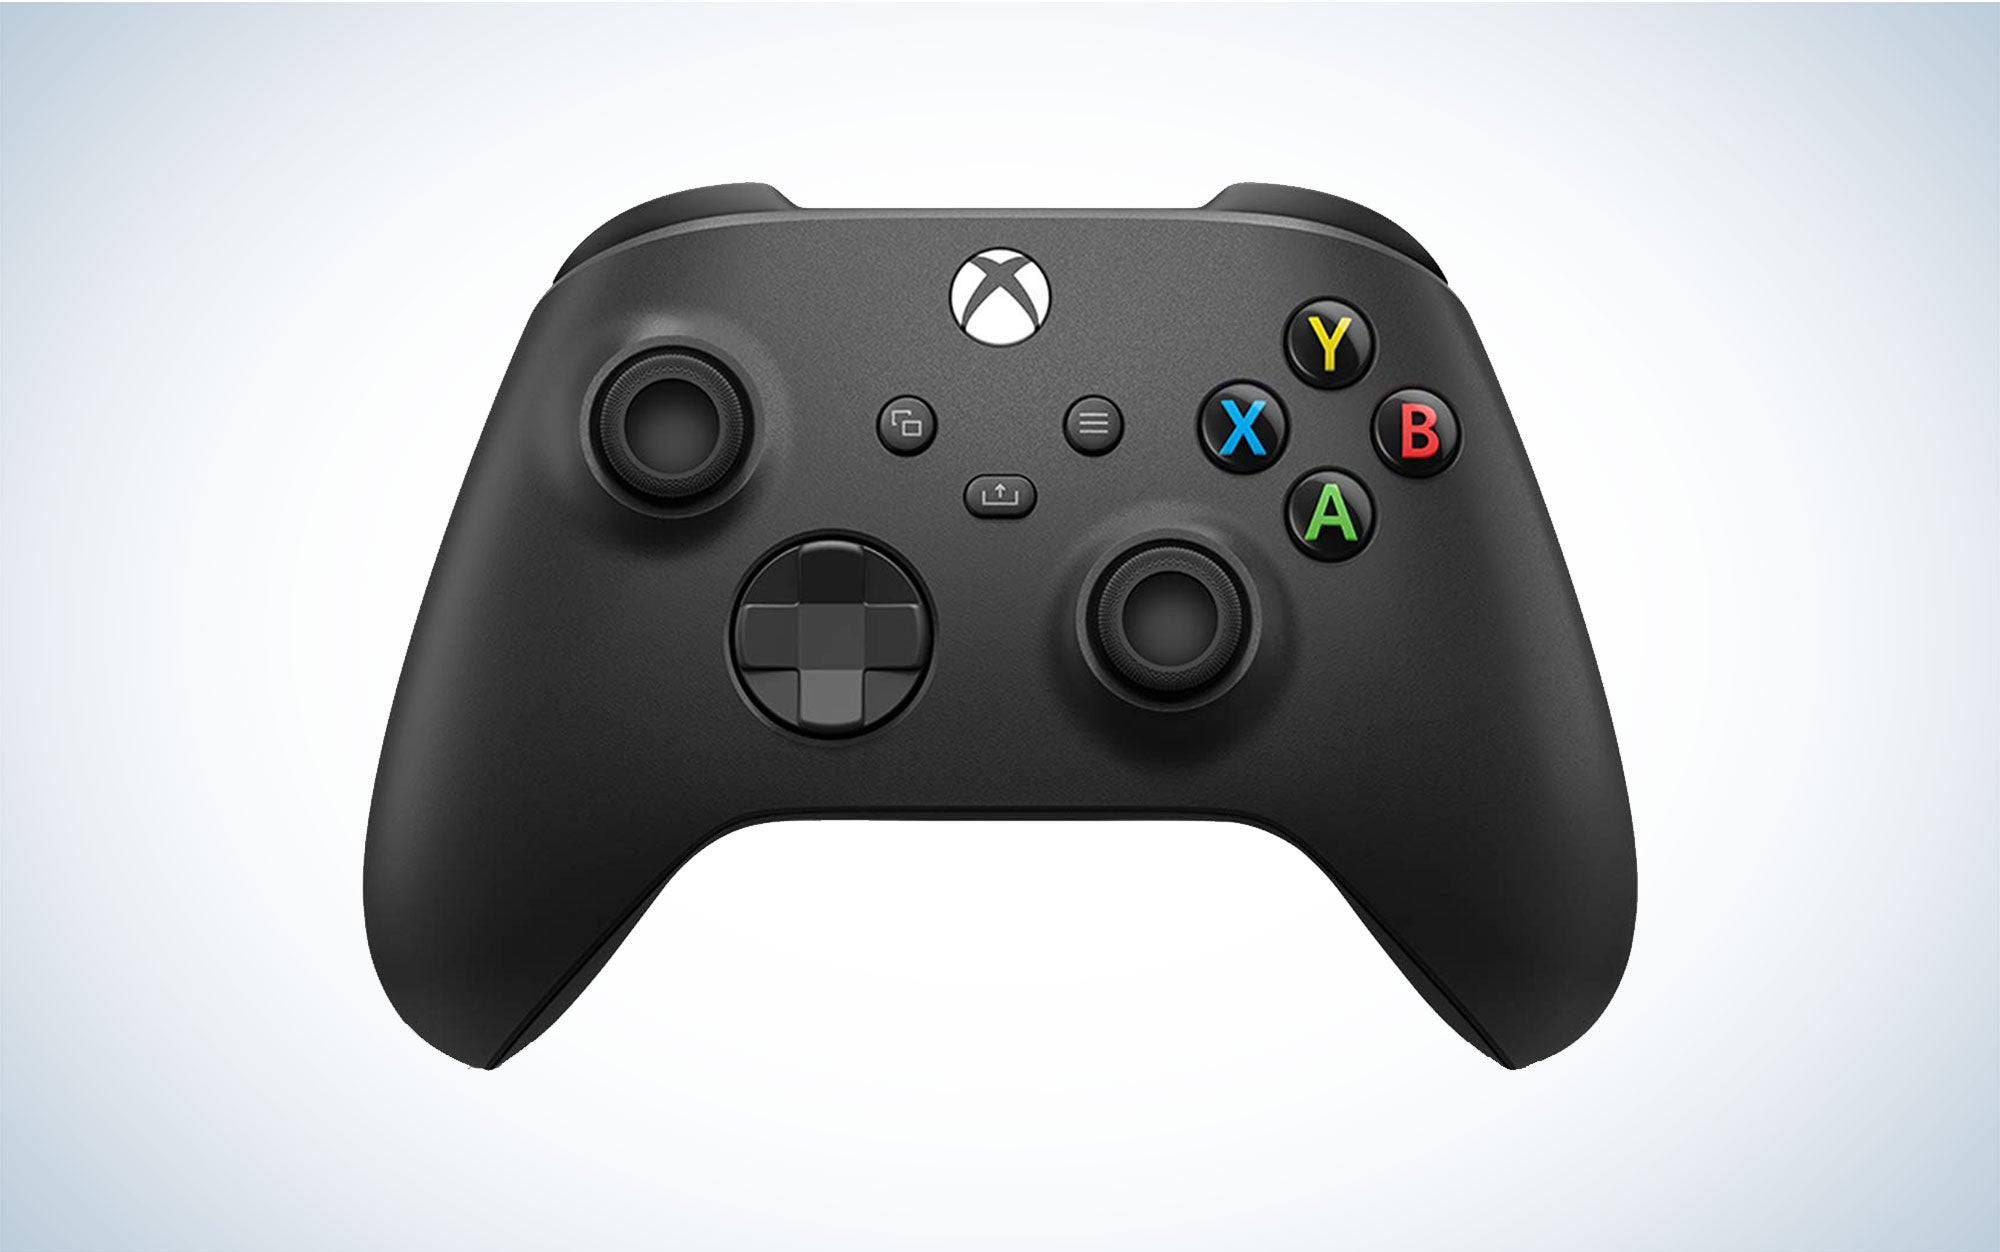 The Xbox Wireless Controller is the best Xbox One Controller.